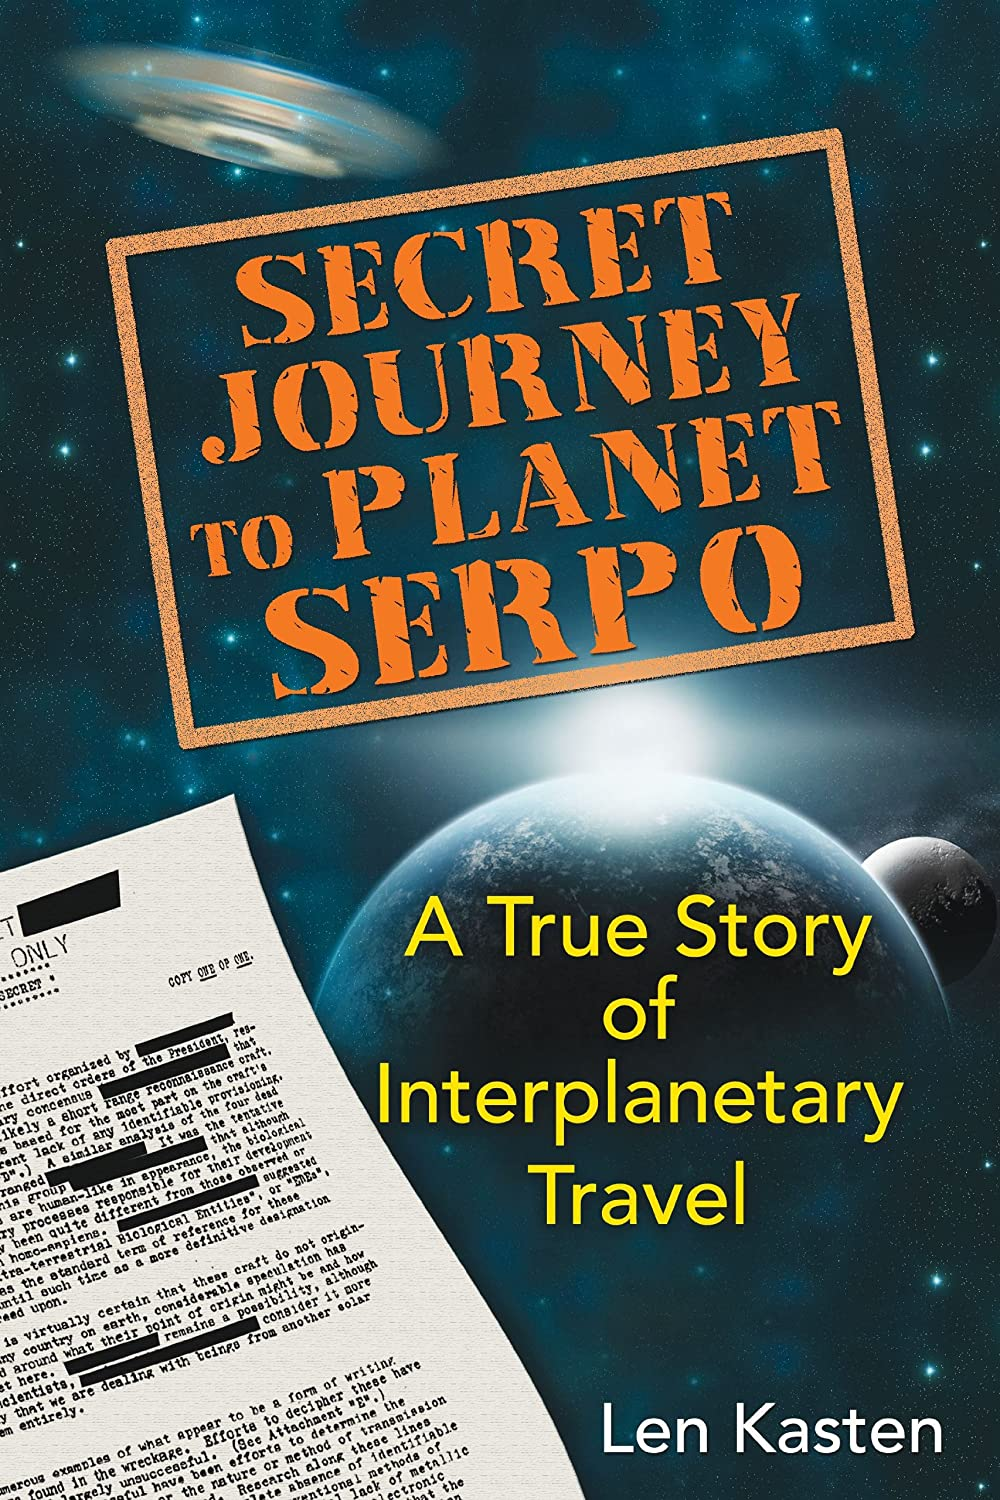 Len Kasten | Interplanetary Journey to the Alien Planet SERPO - Powered by Inception Radio Network